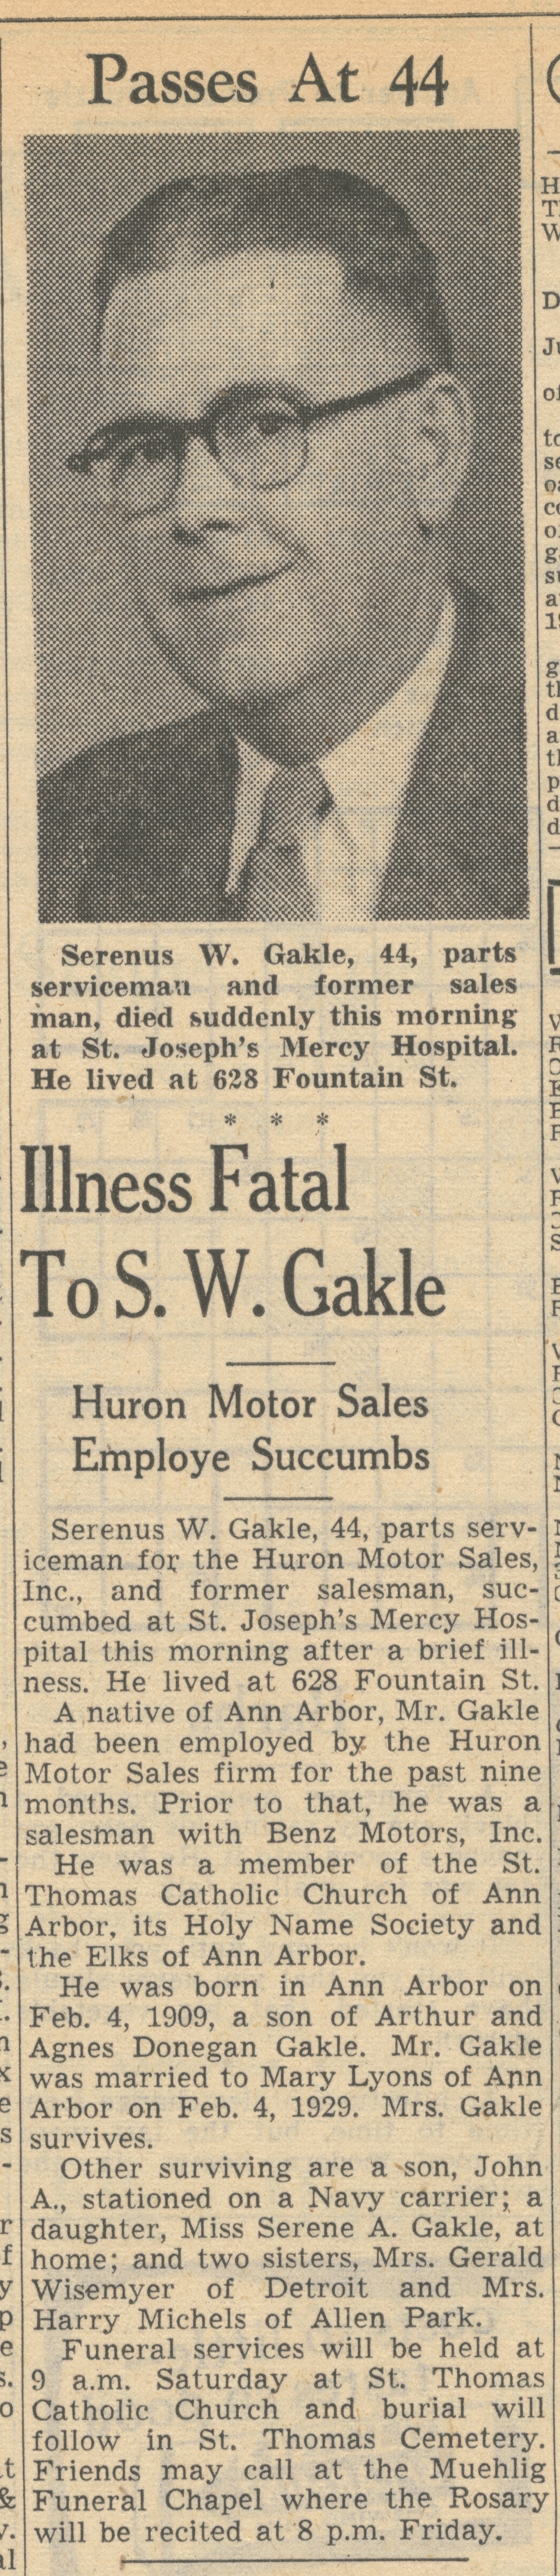 Illness Fatal To S. W. Gakle image